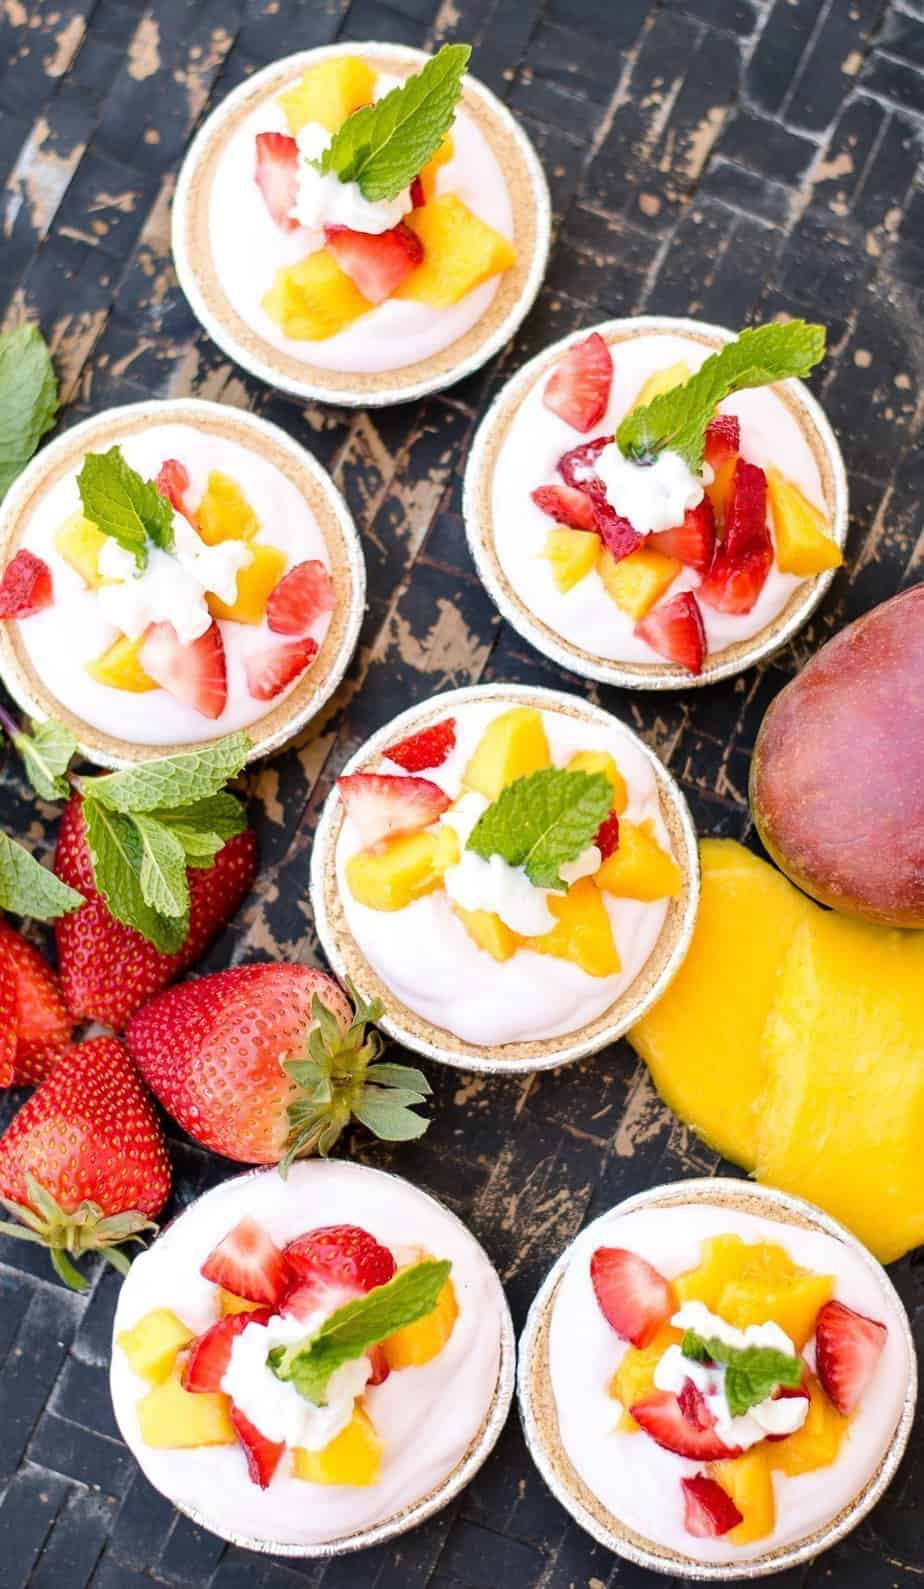 No-Bake Mango and Strawberry Cheesecake Mini Pies - An Alli Event